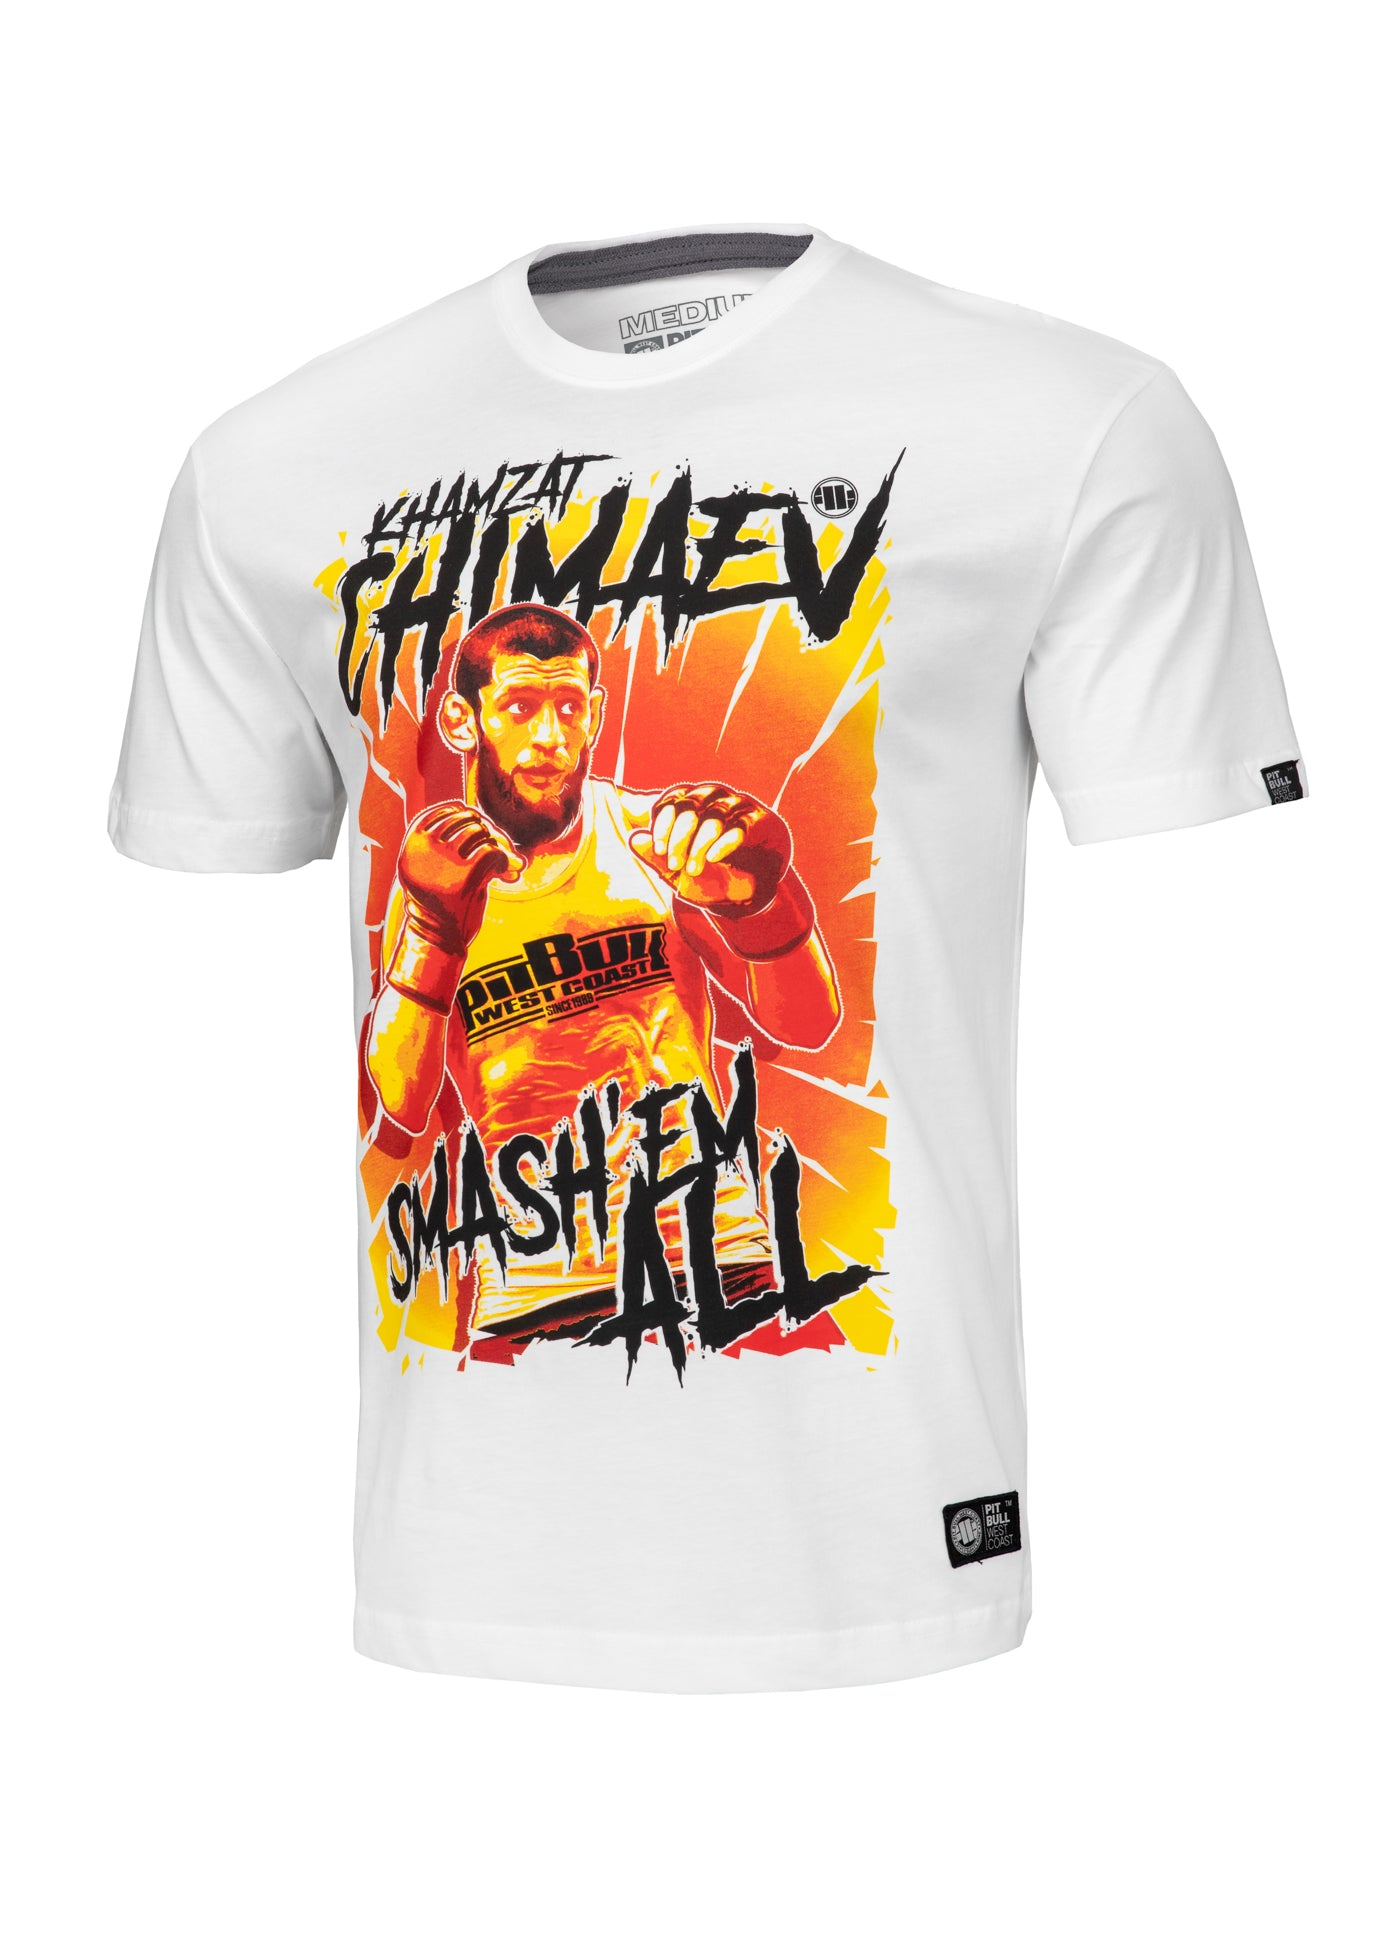 Official Khamzat Chimaev - Smash'em all T-shirt from PITBULL USA